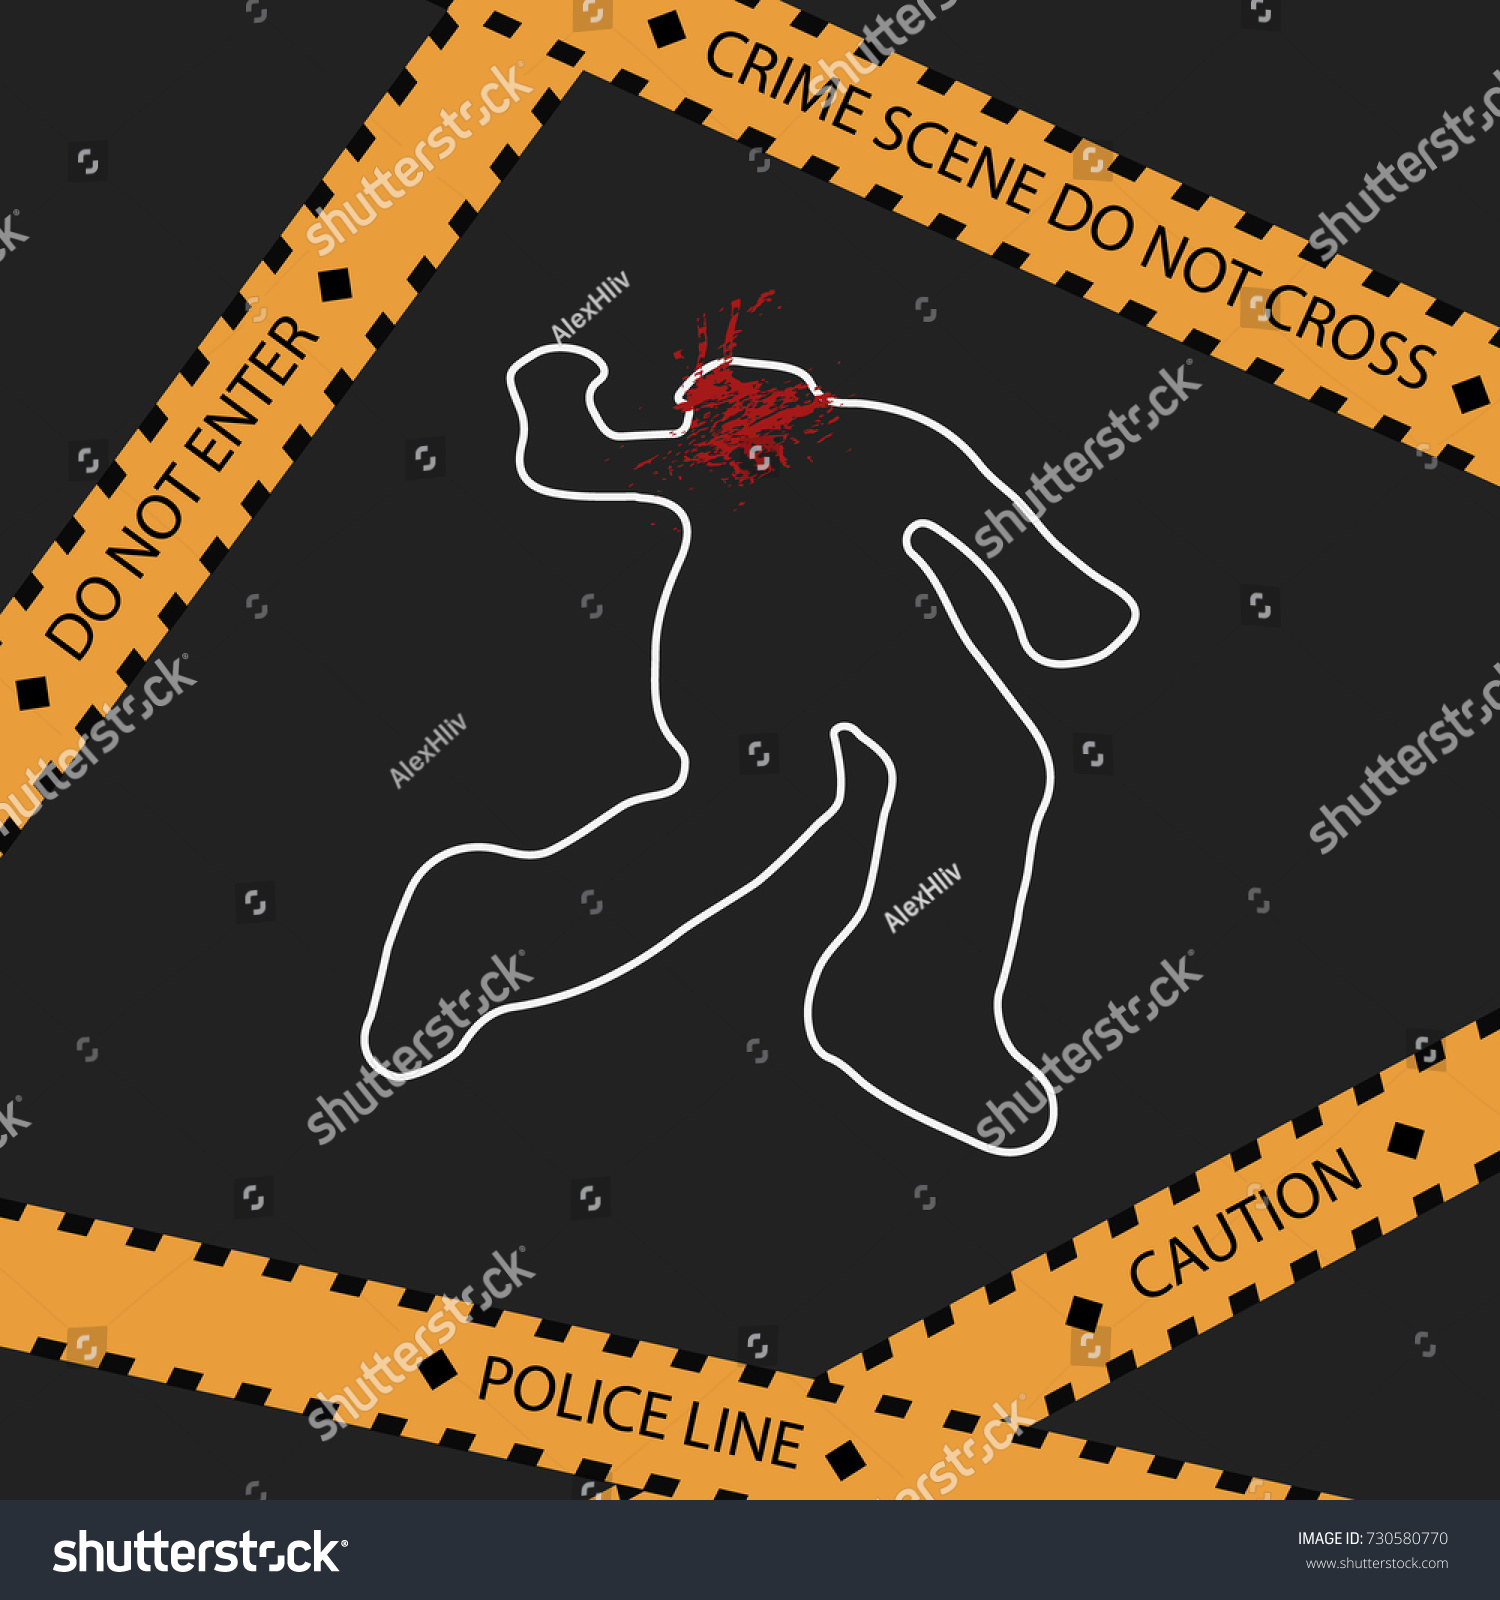 dead man silhouette head shot crime scene do not cross police line